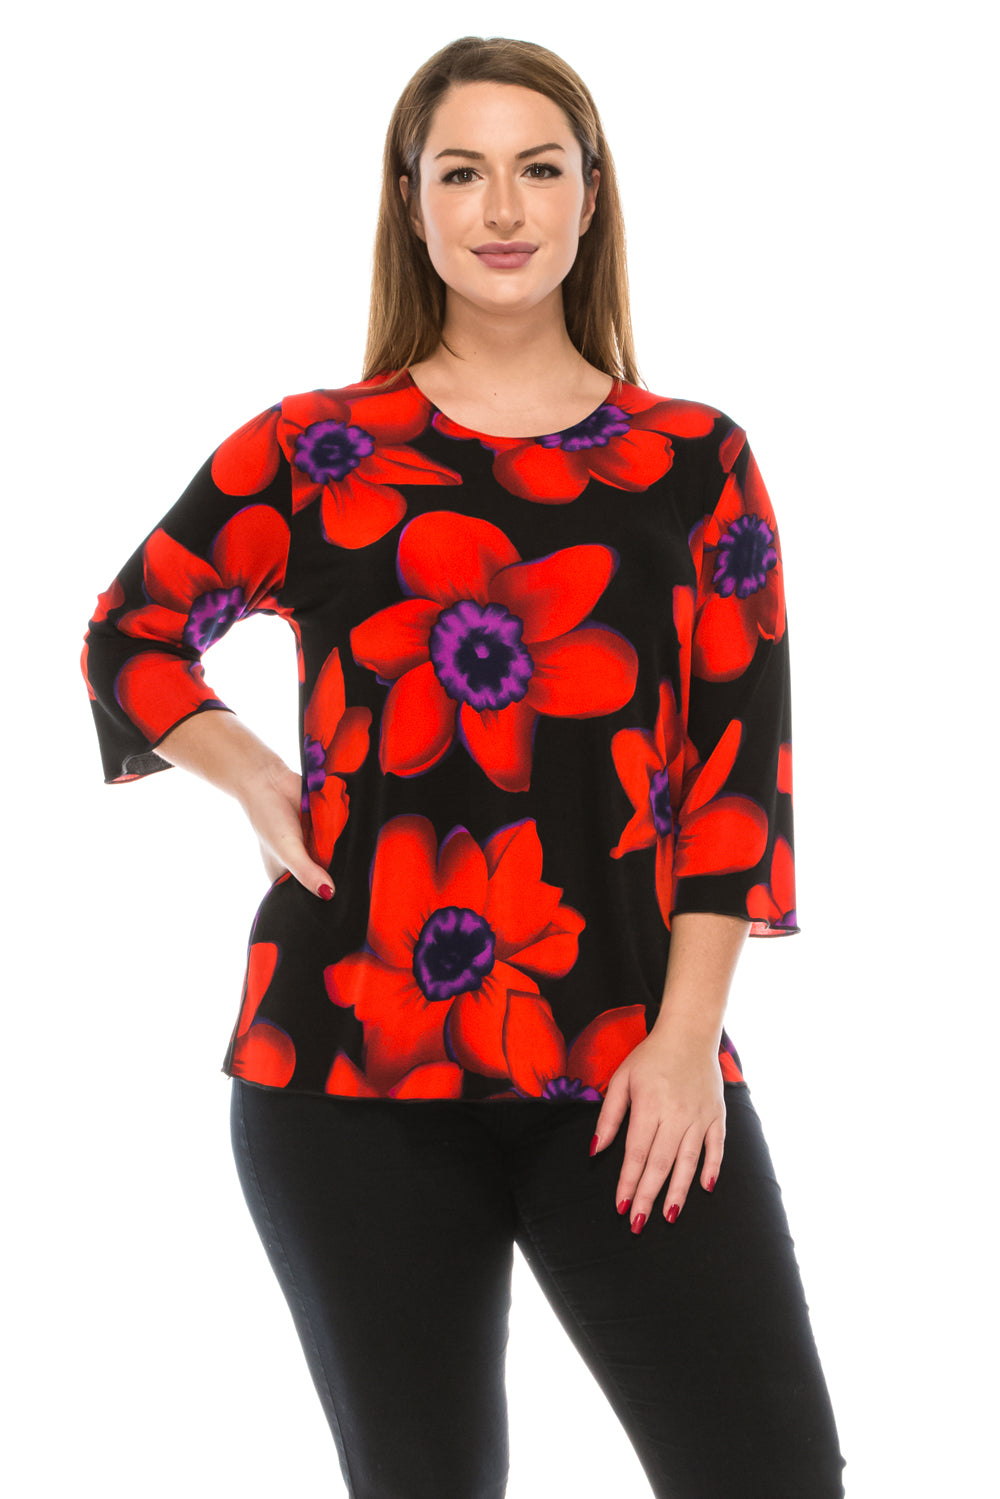 Jostar Women's Stretchy Merrow Top Three Quarter Print, 158BN-QP-W075 - Jostar Online